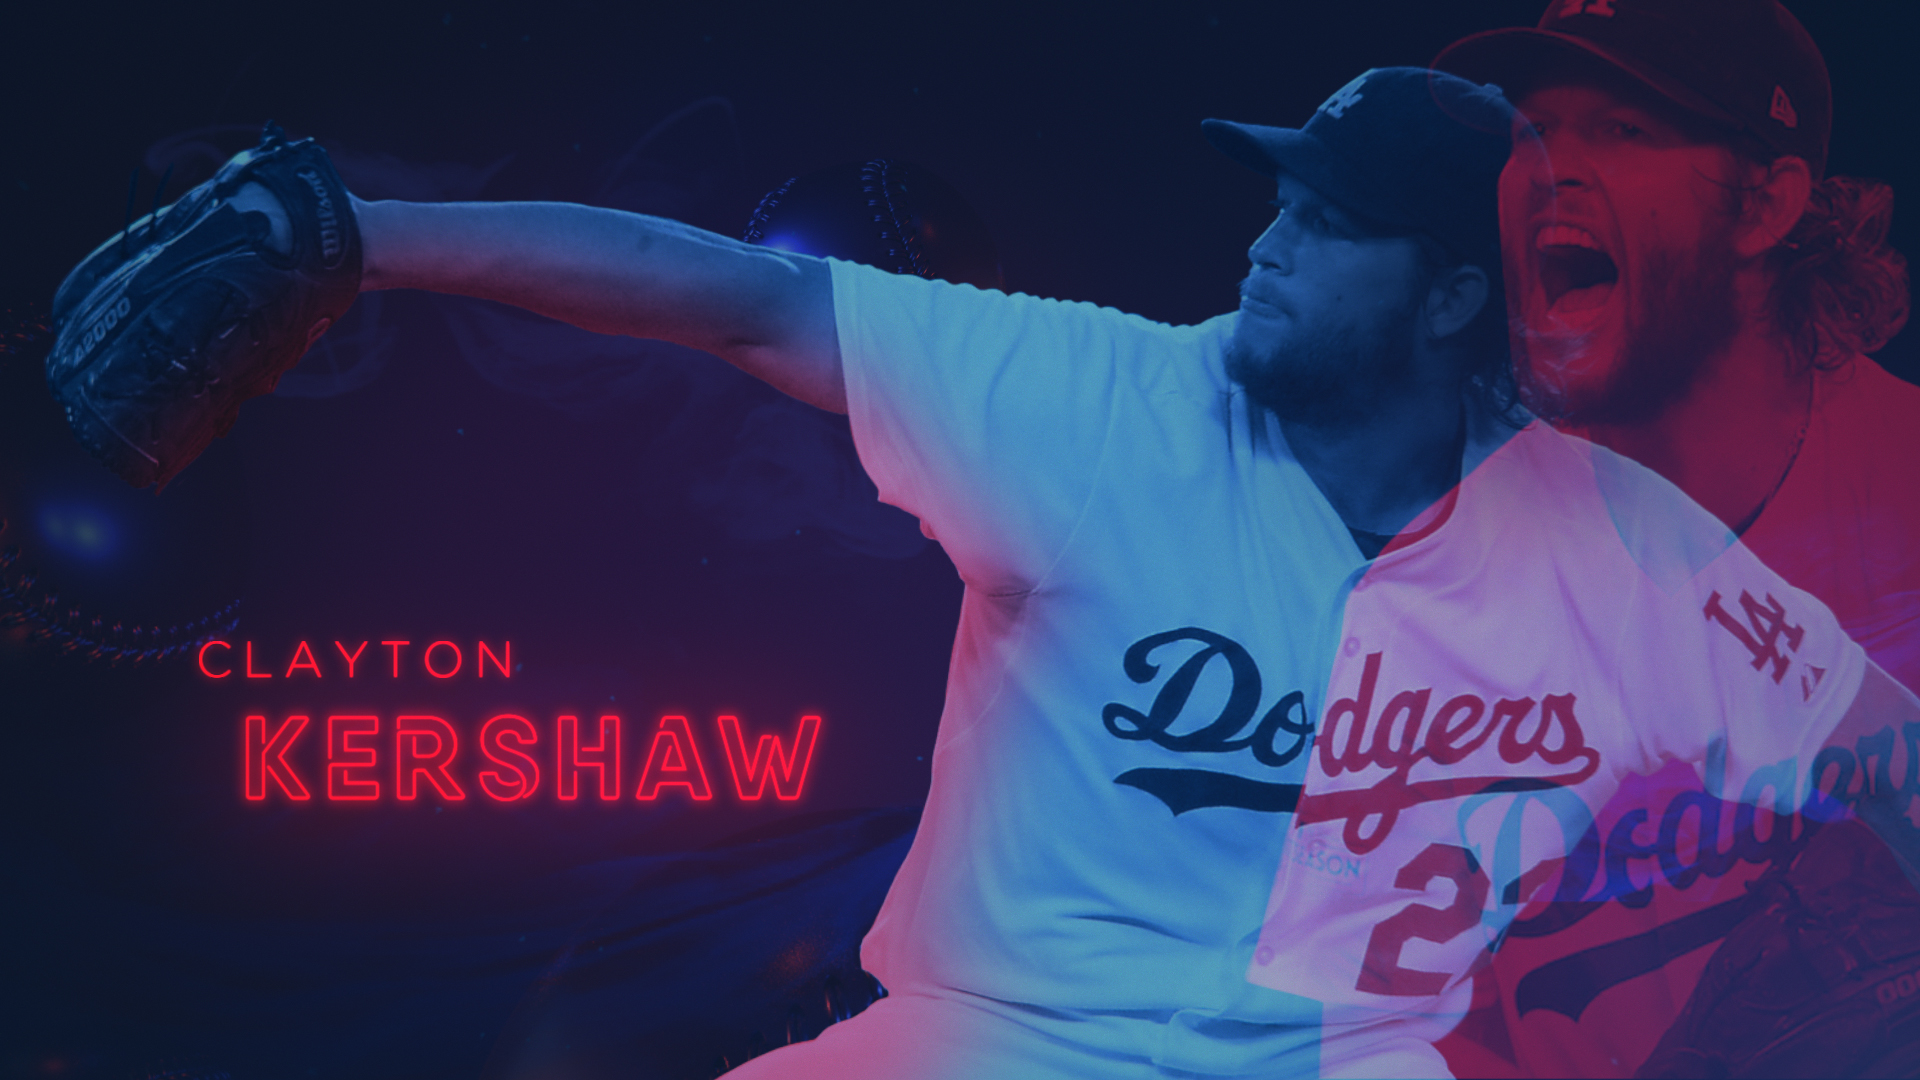 MLB_Post18_Player-Kershaw_Look1_03.jpg